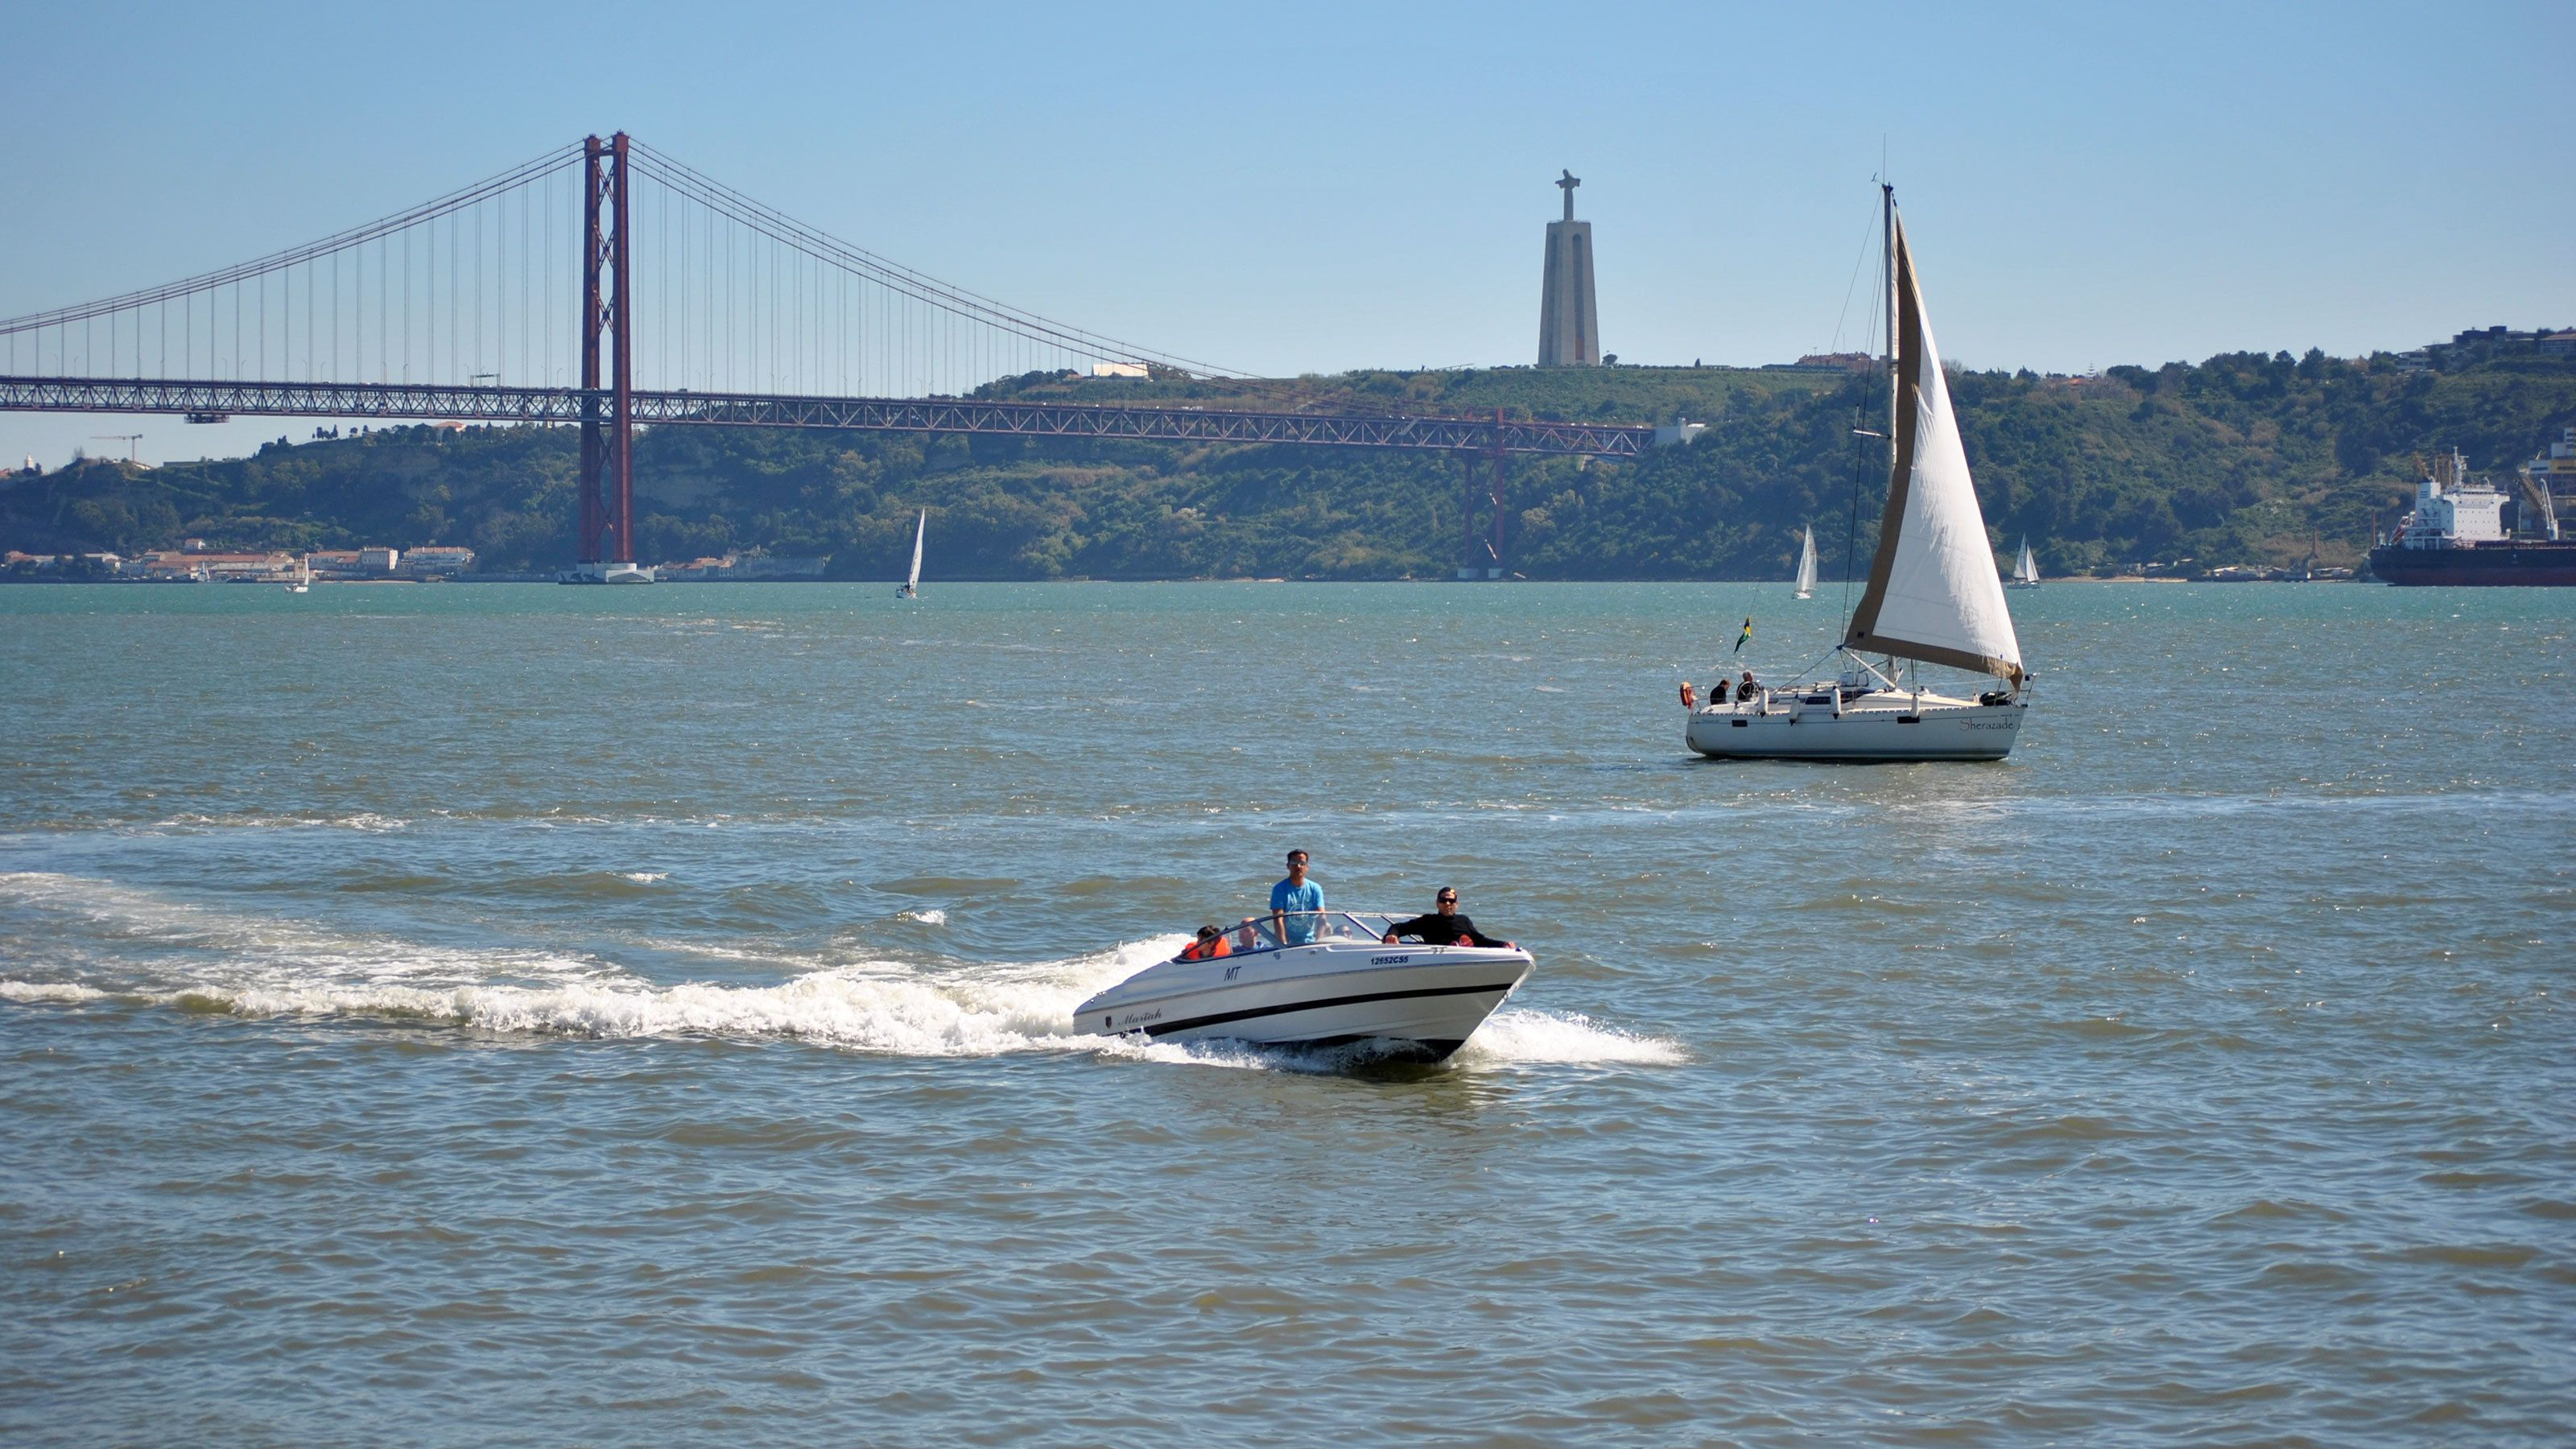 Motor boat on the water with bridge in the background in Lisbon